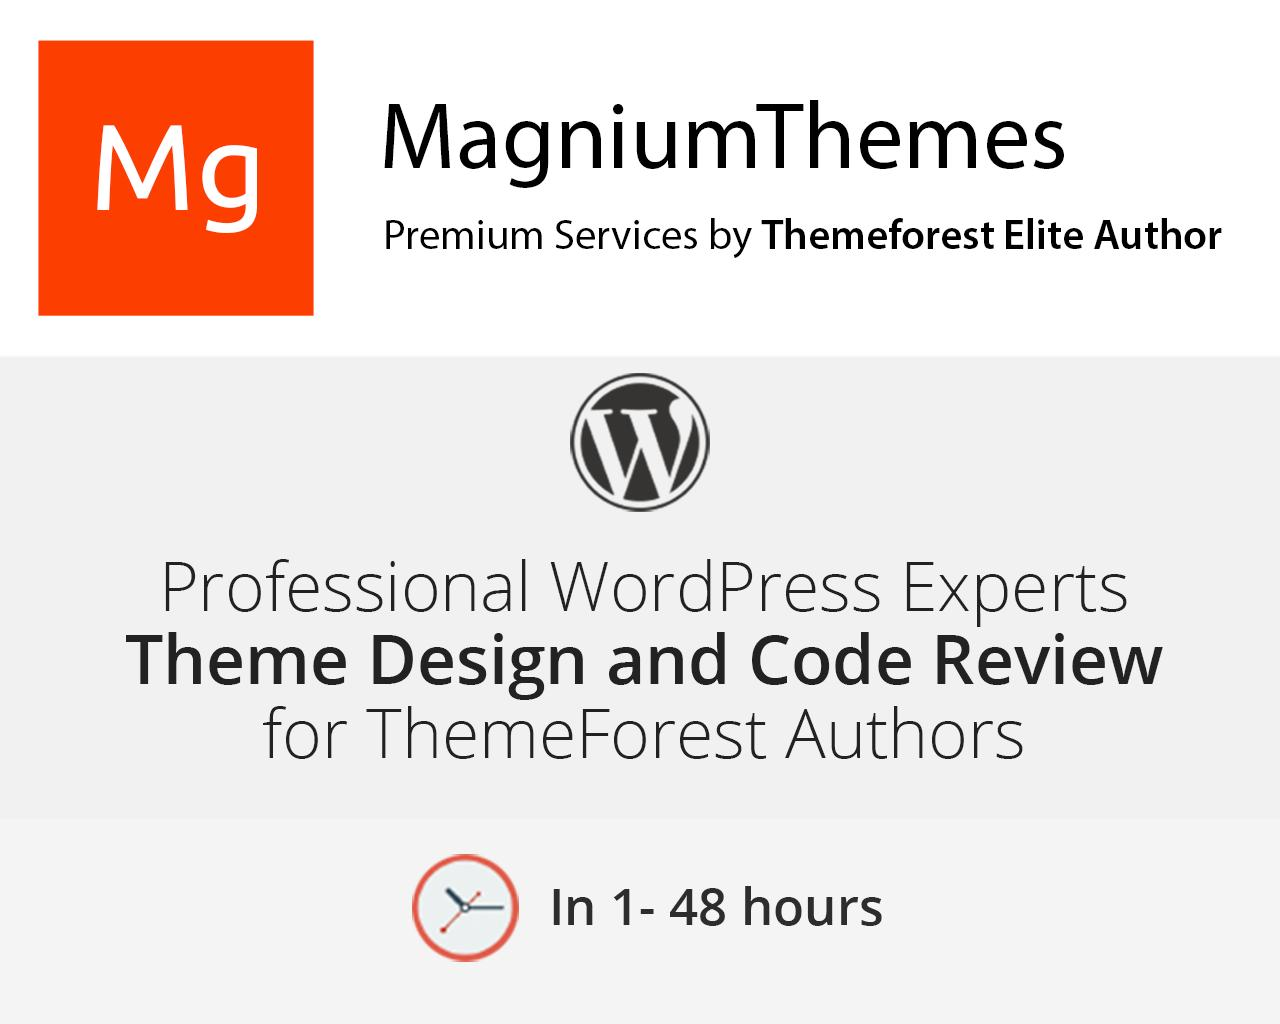 WordPress Theme Code & Design Review for Themeforest Authors by dedalx - 105774